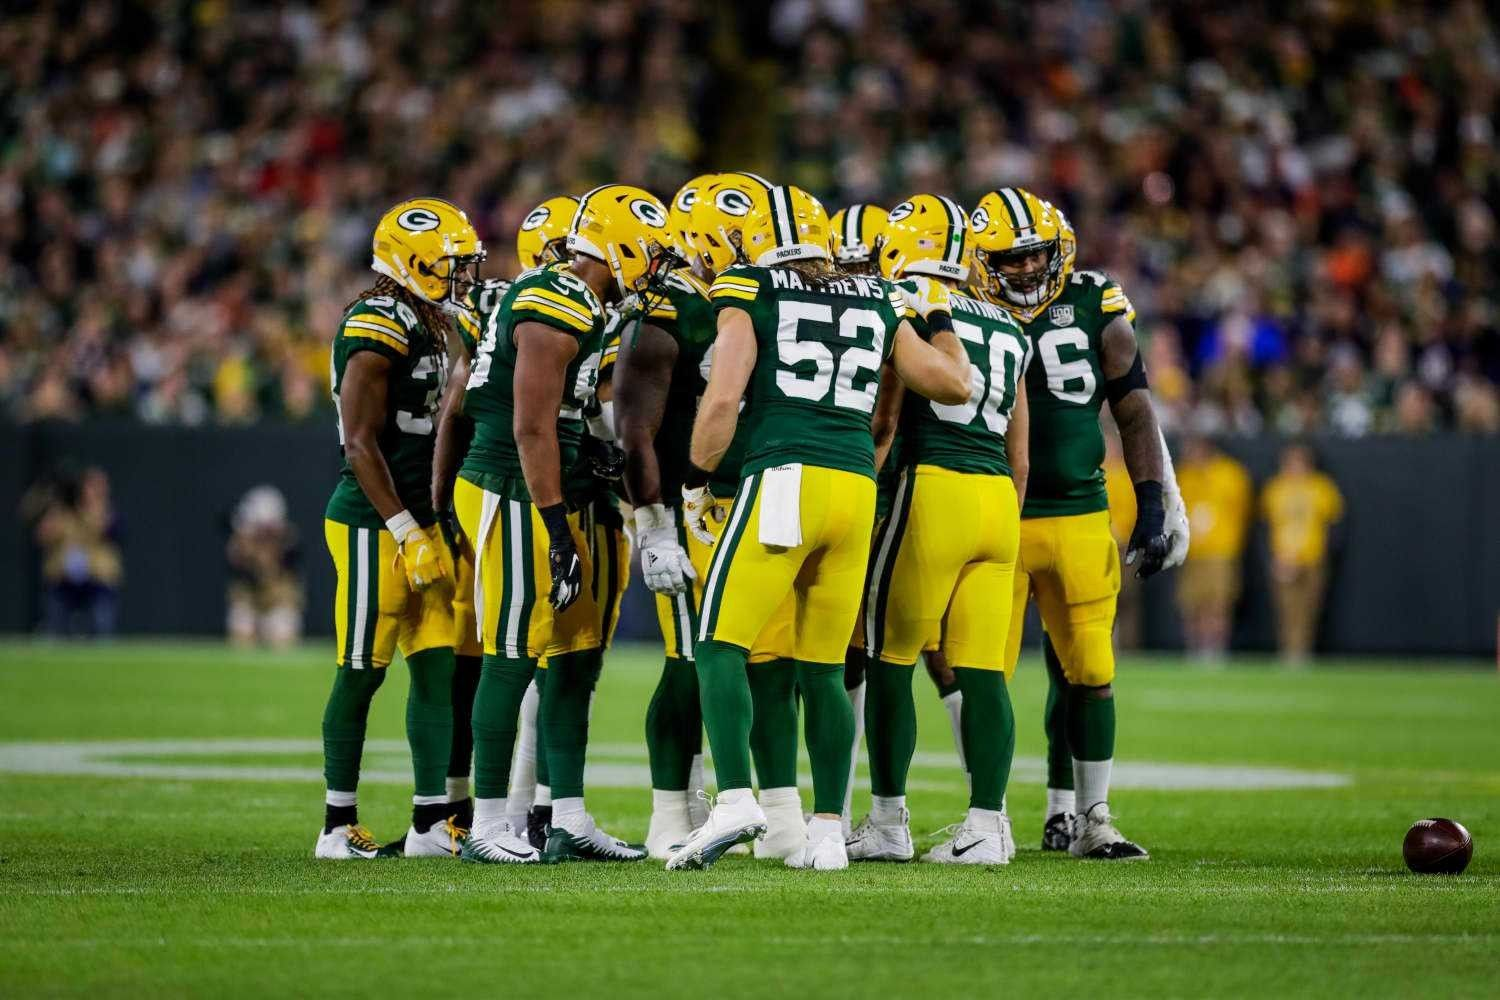 Pin By Cj Daniels On Go Pack Go Green Bay Packers Green Bay Packers